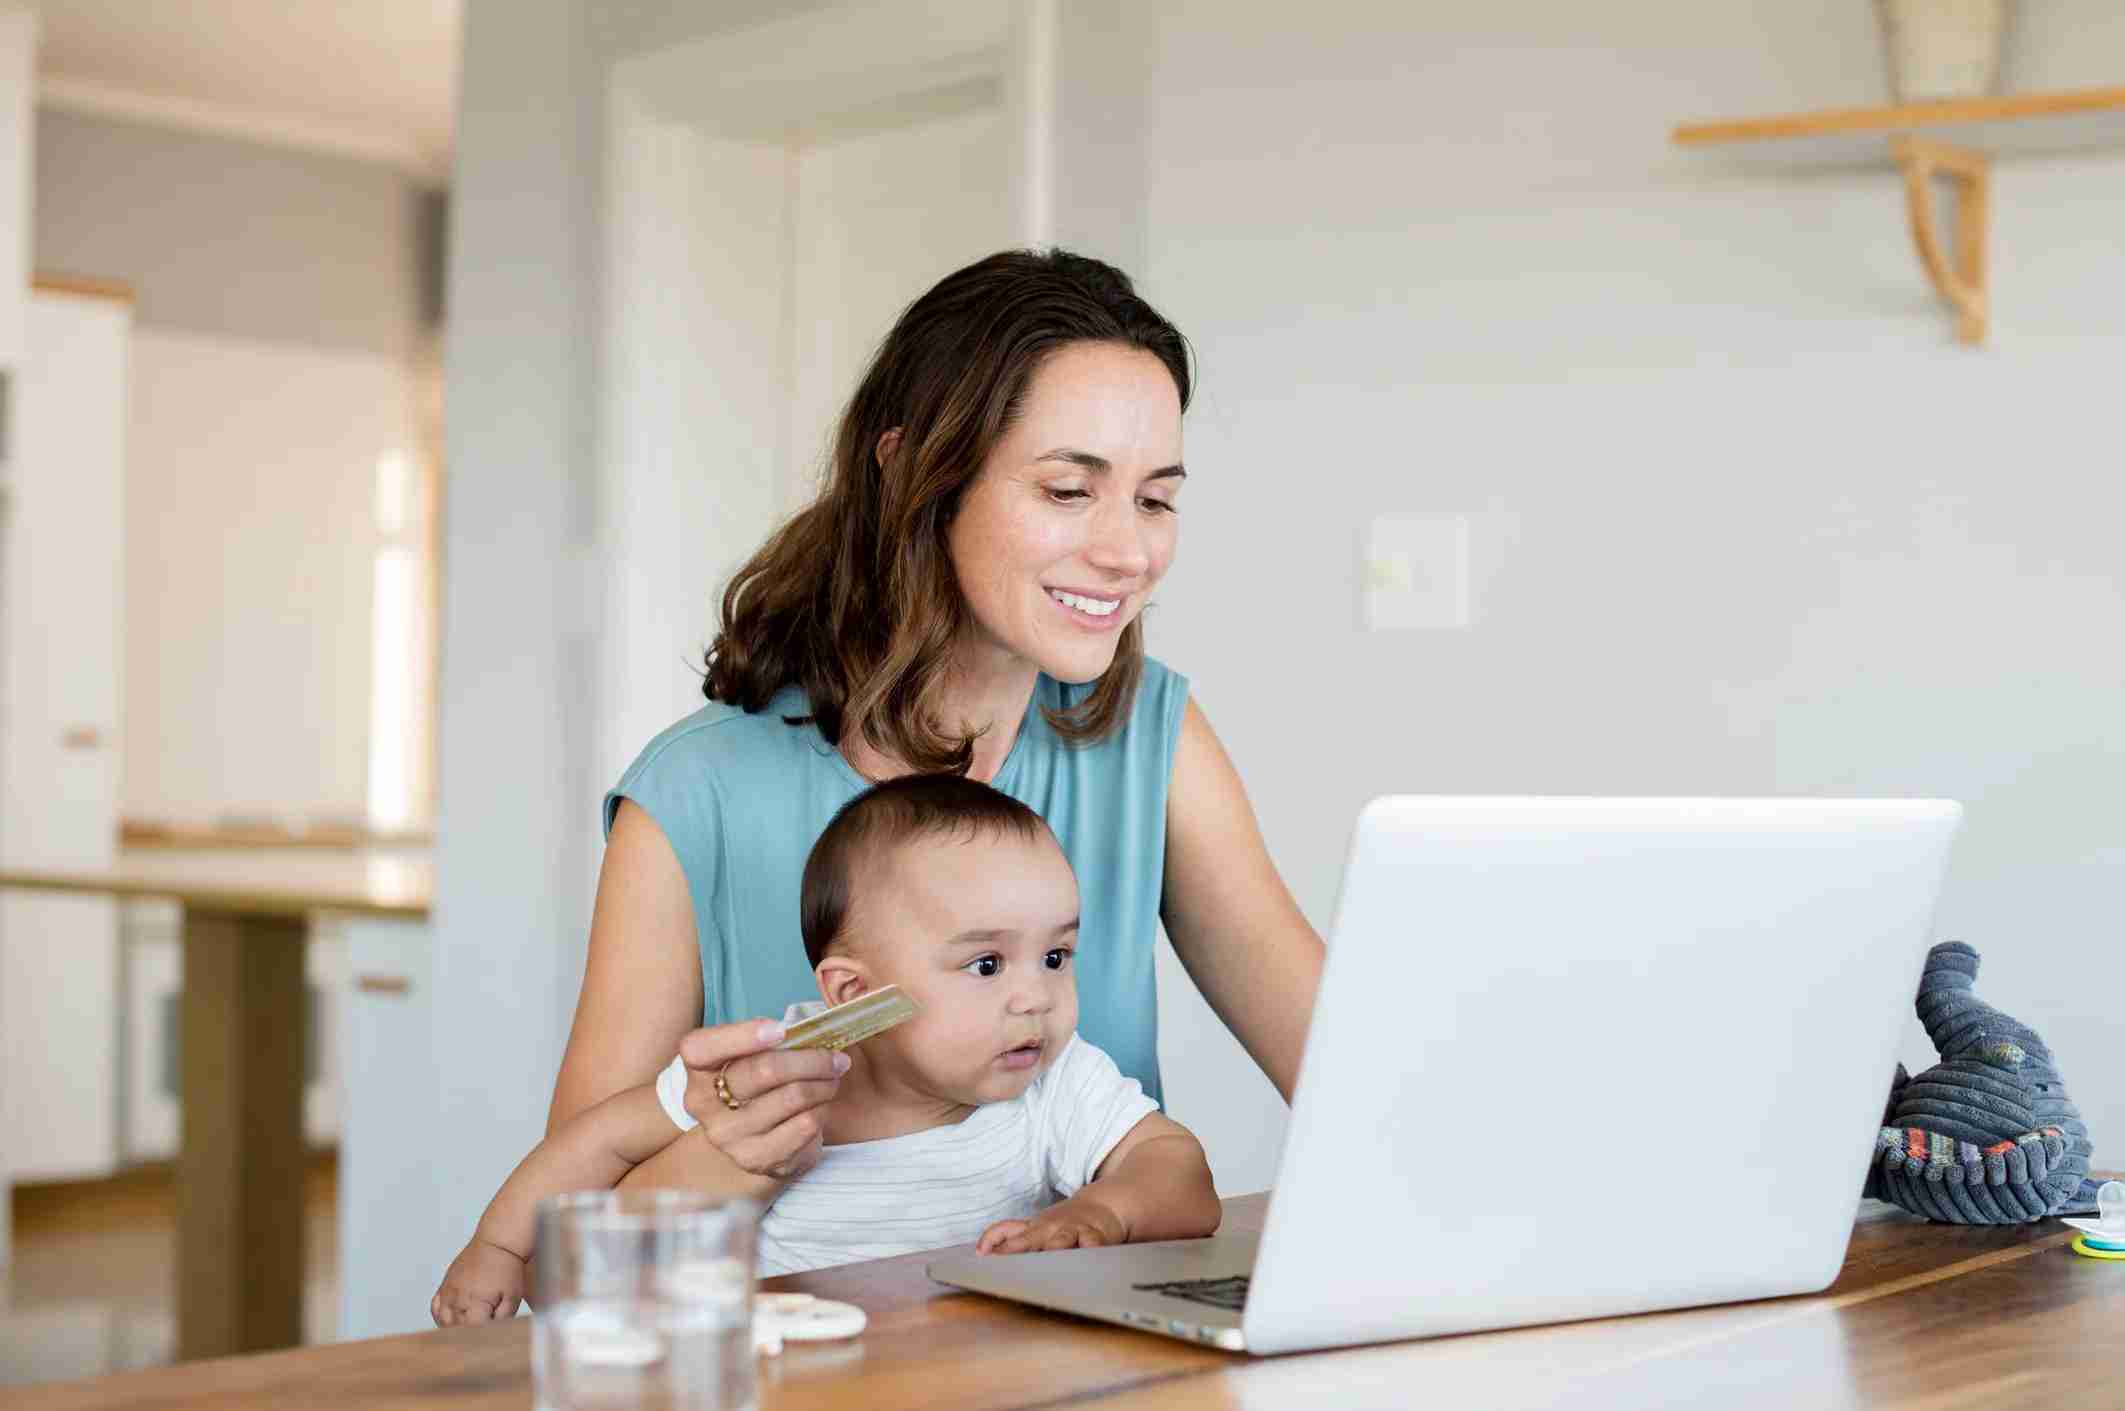 woman and baby with laptop and credit card